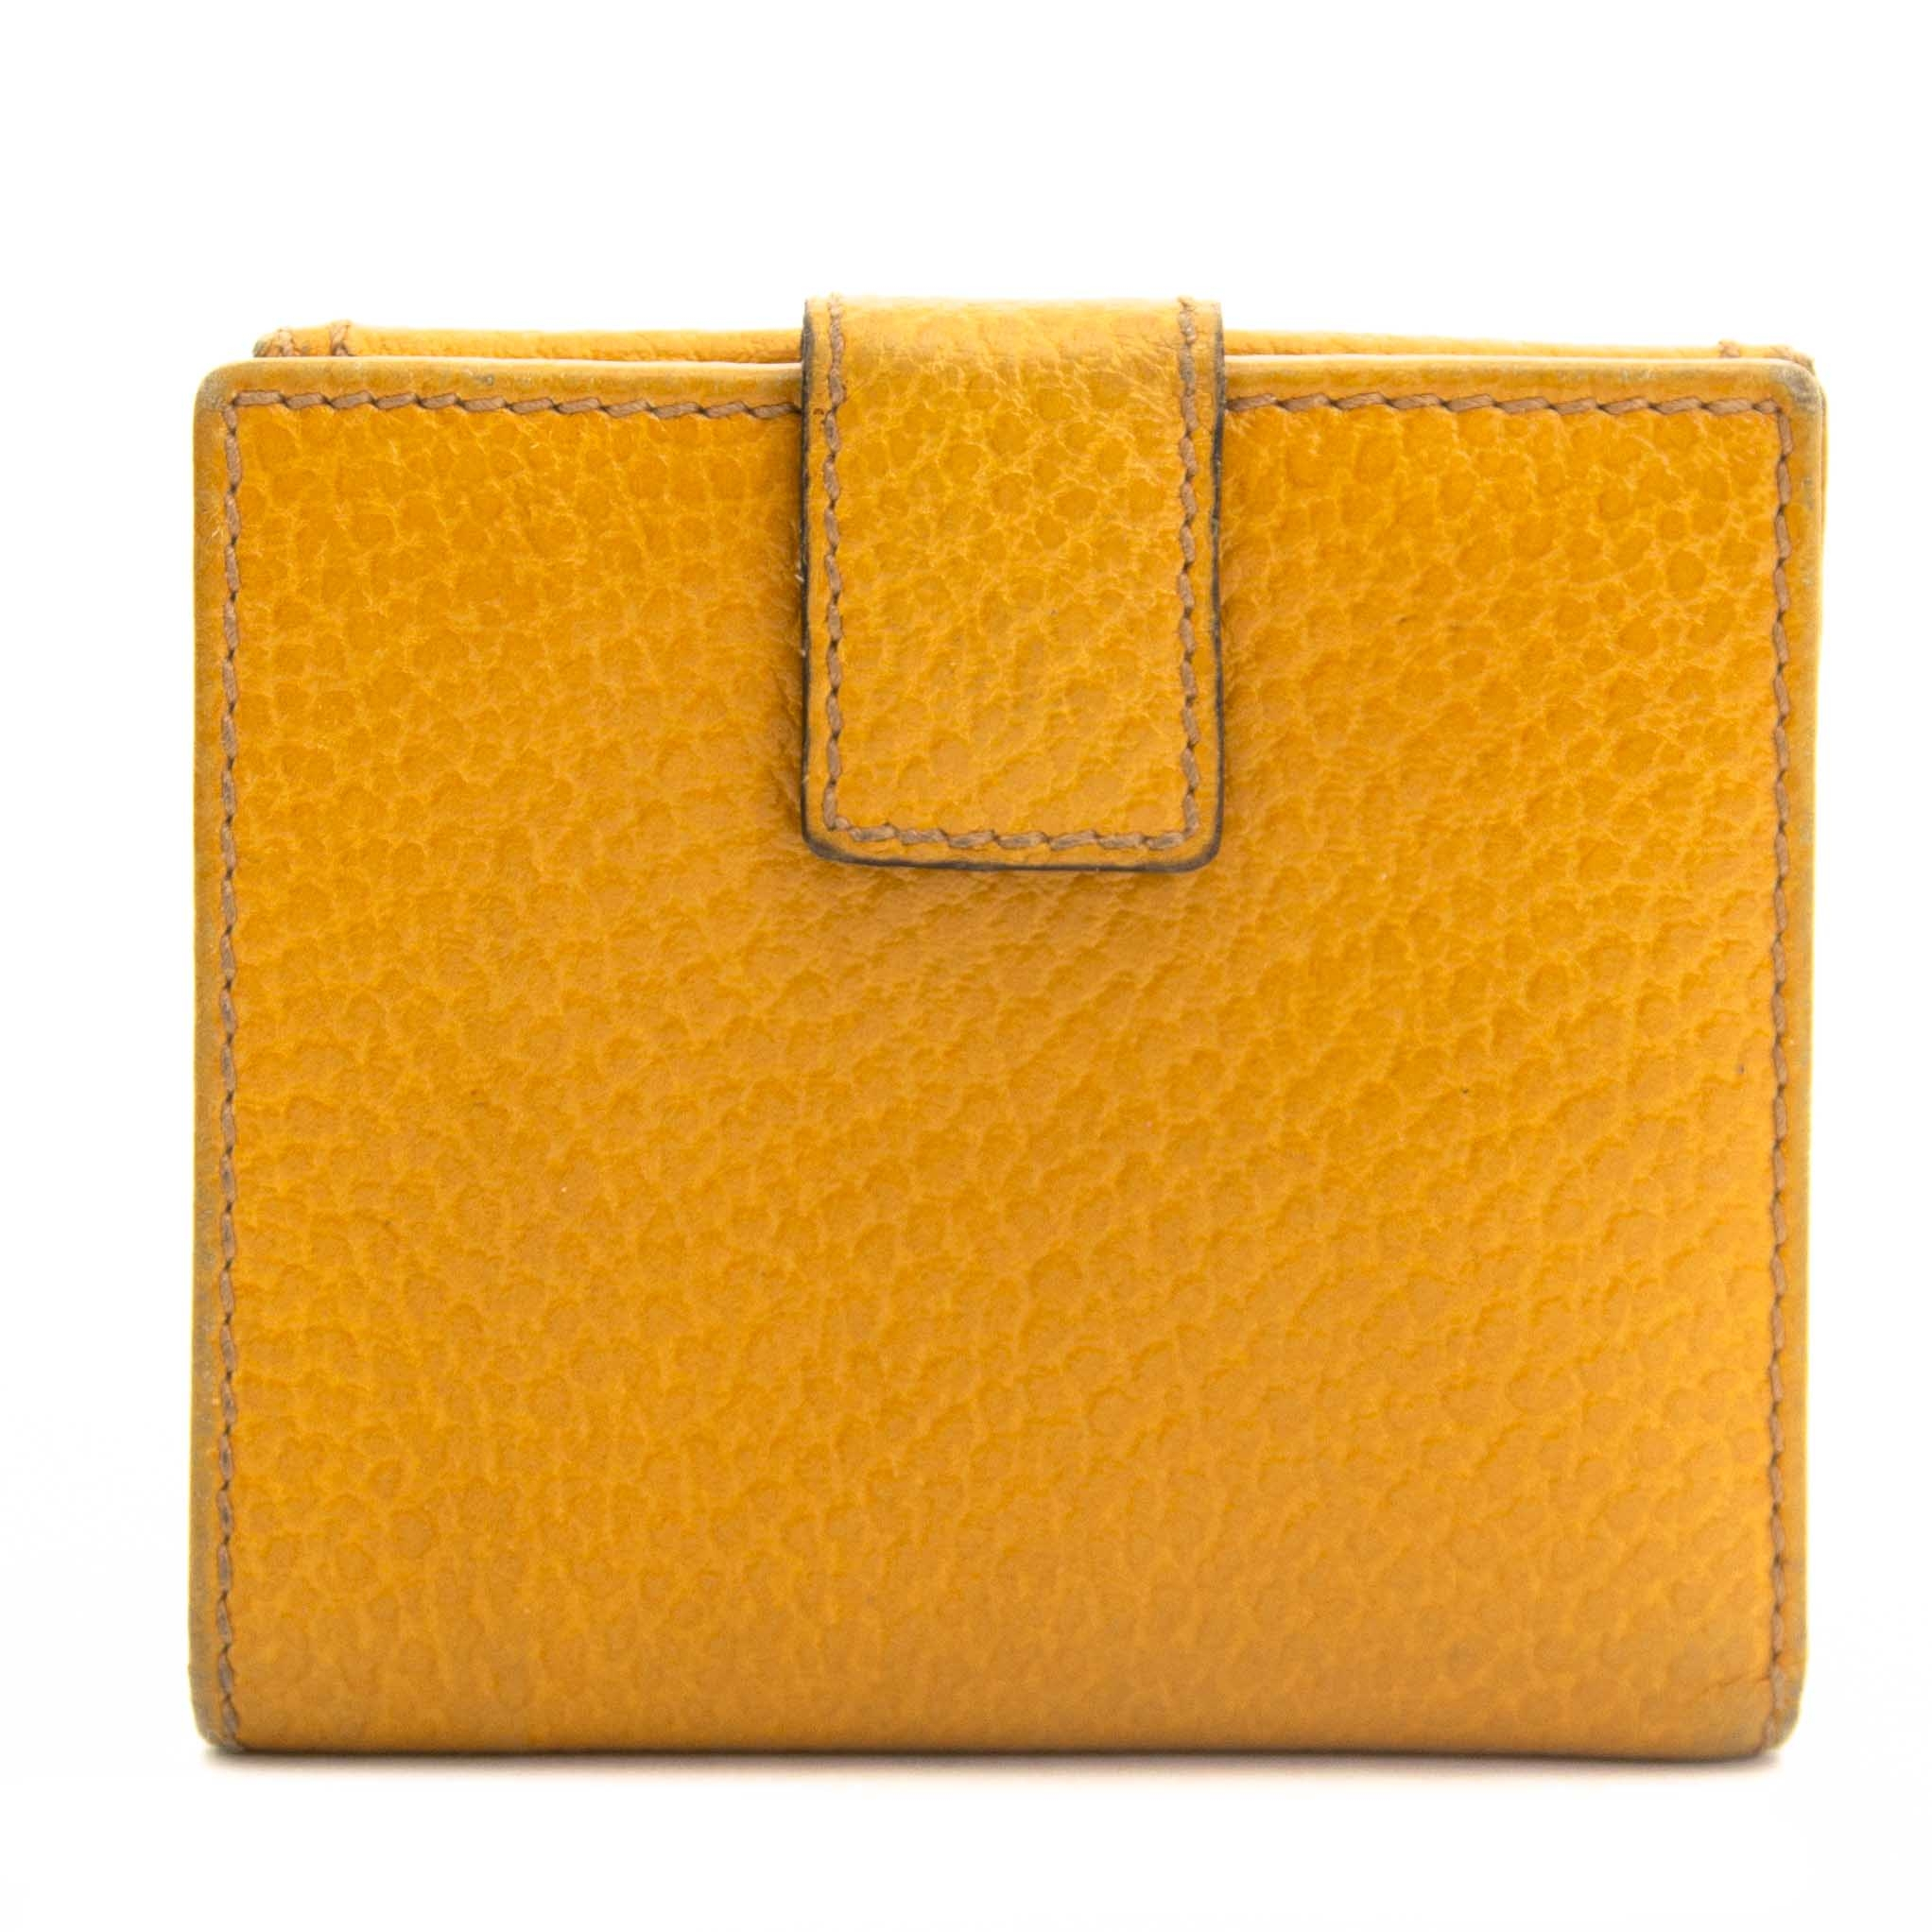 Gucci Yellow Bamboo Wallet now for sale at labellov vintage webshop for the lowest price